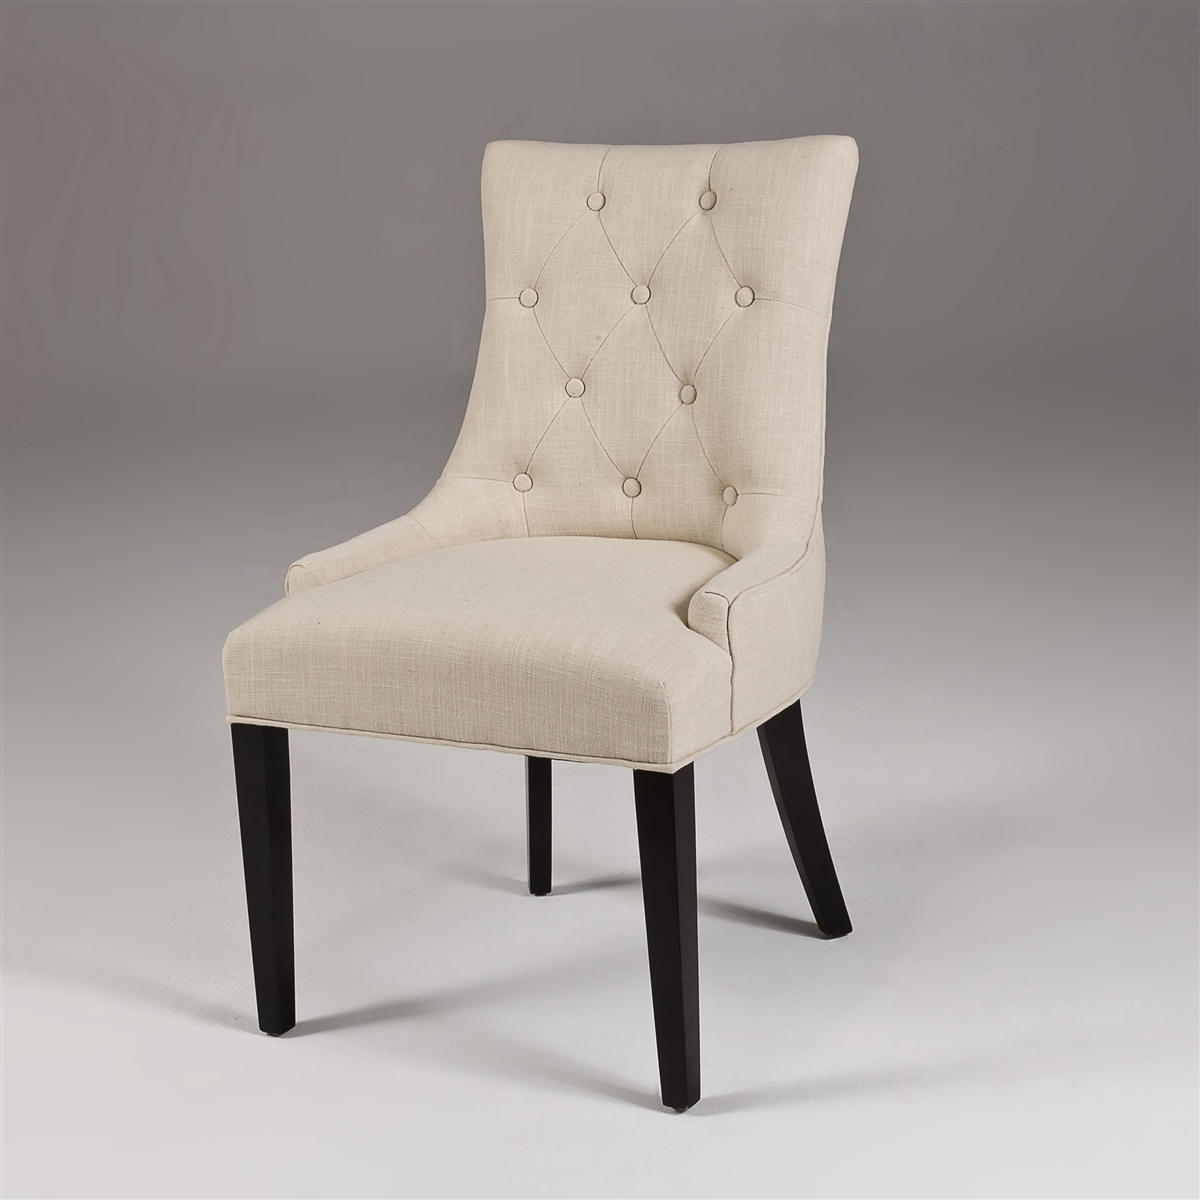 Modern Dining Chairs Beige Linen Dining Chairs Tufted